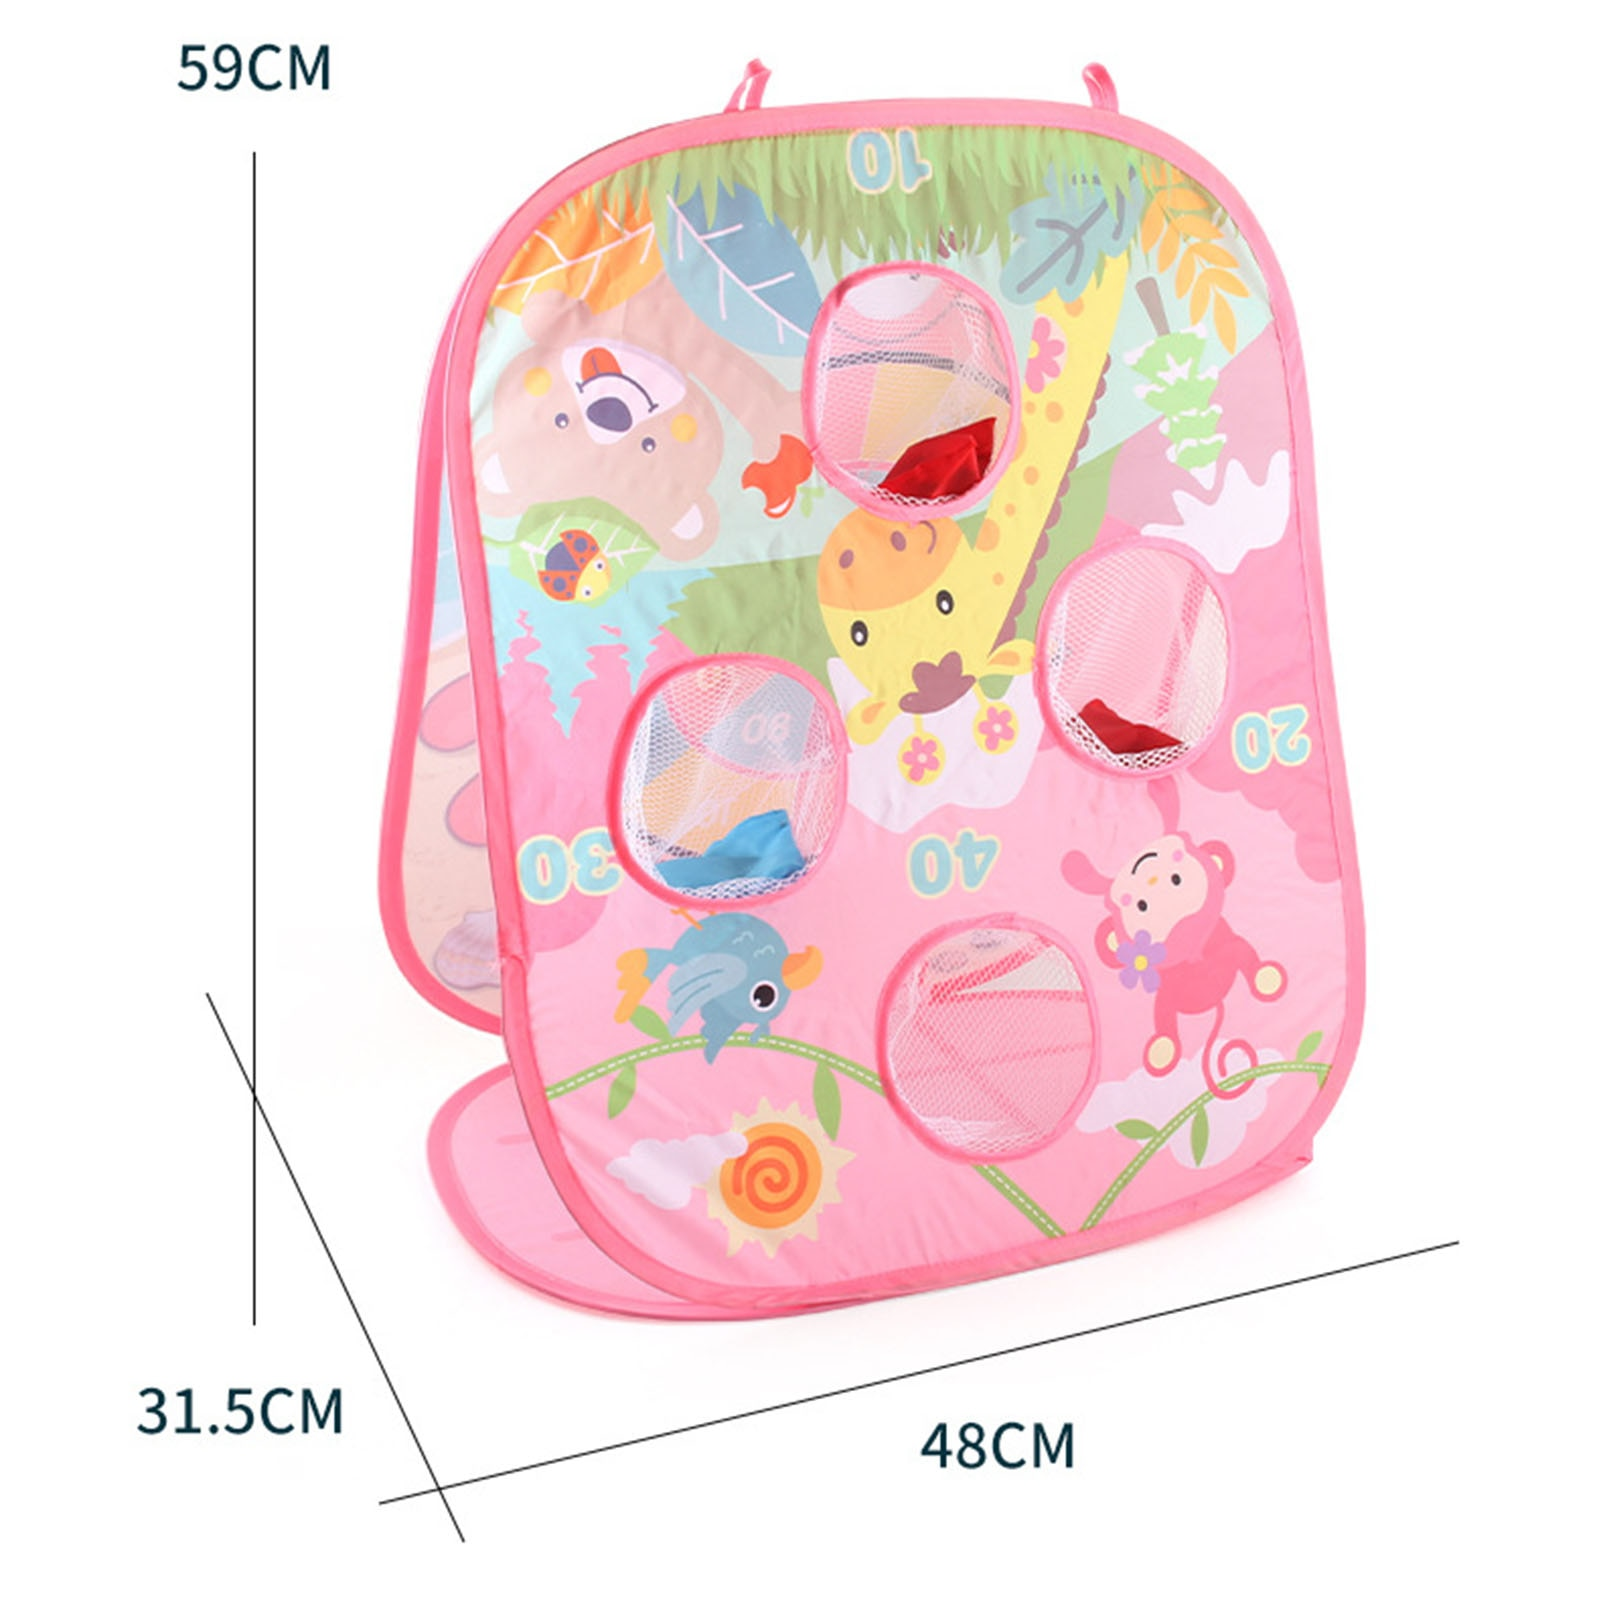 Kids Bean Bag Outdoor Throwing Game Dart Portable Board Game Toy Set Sandbag Outdoor Beach Game Toys For Children  - buy with discount